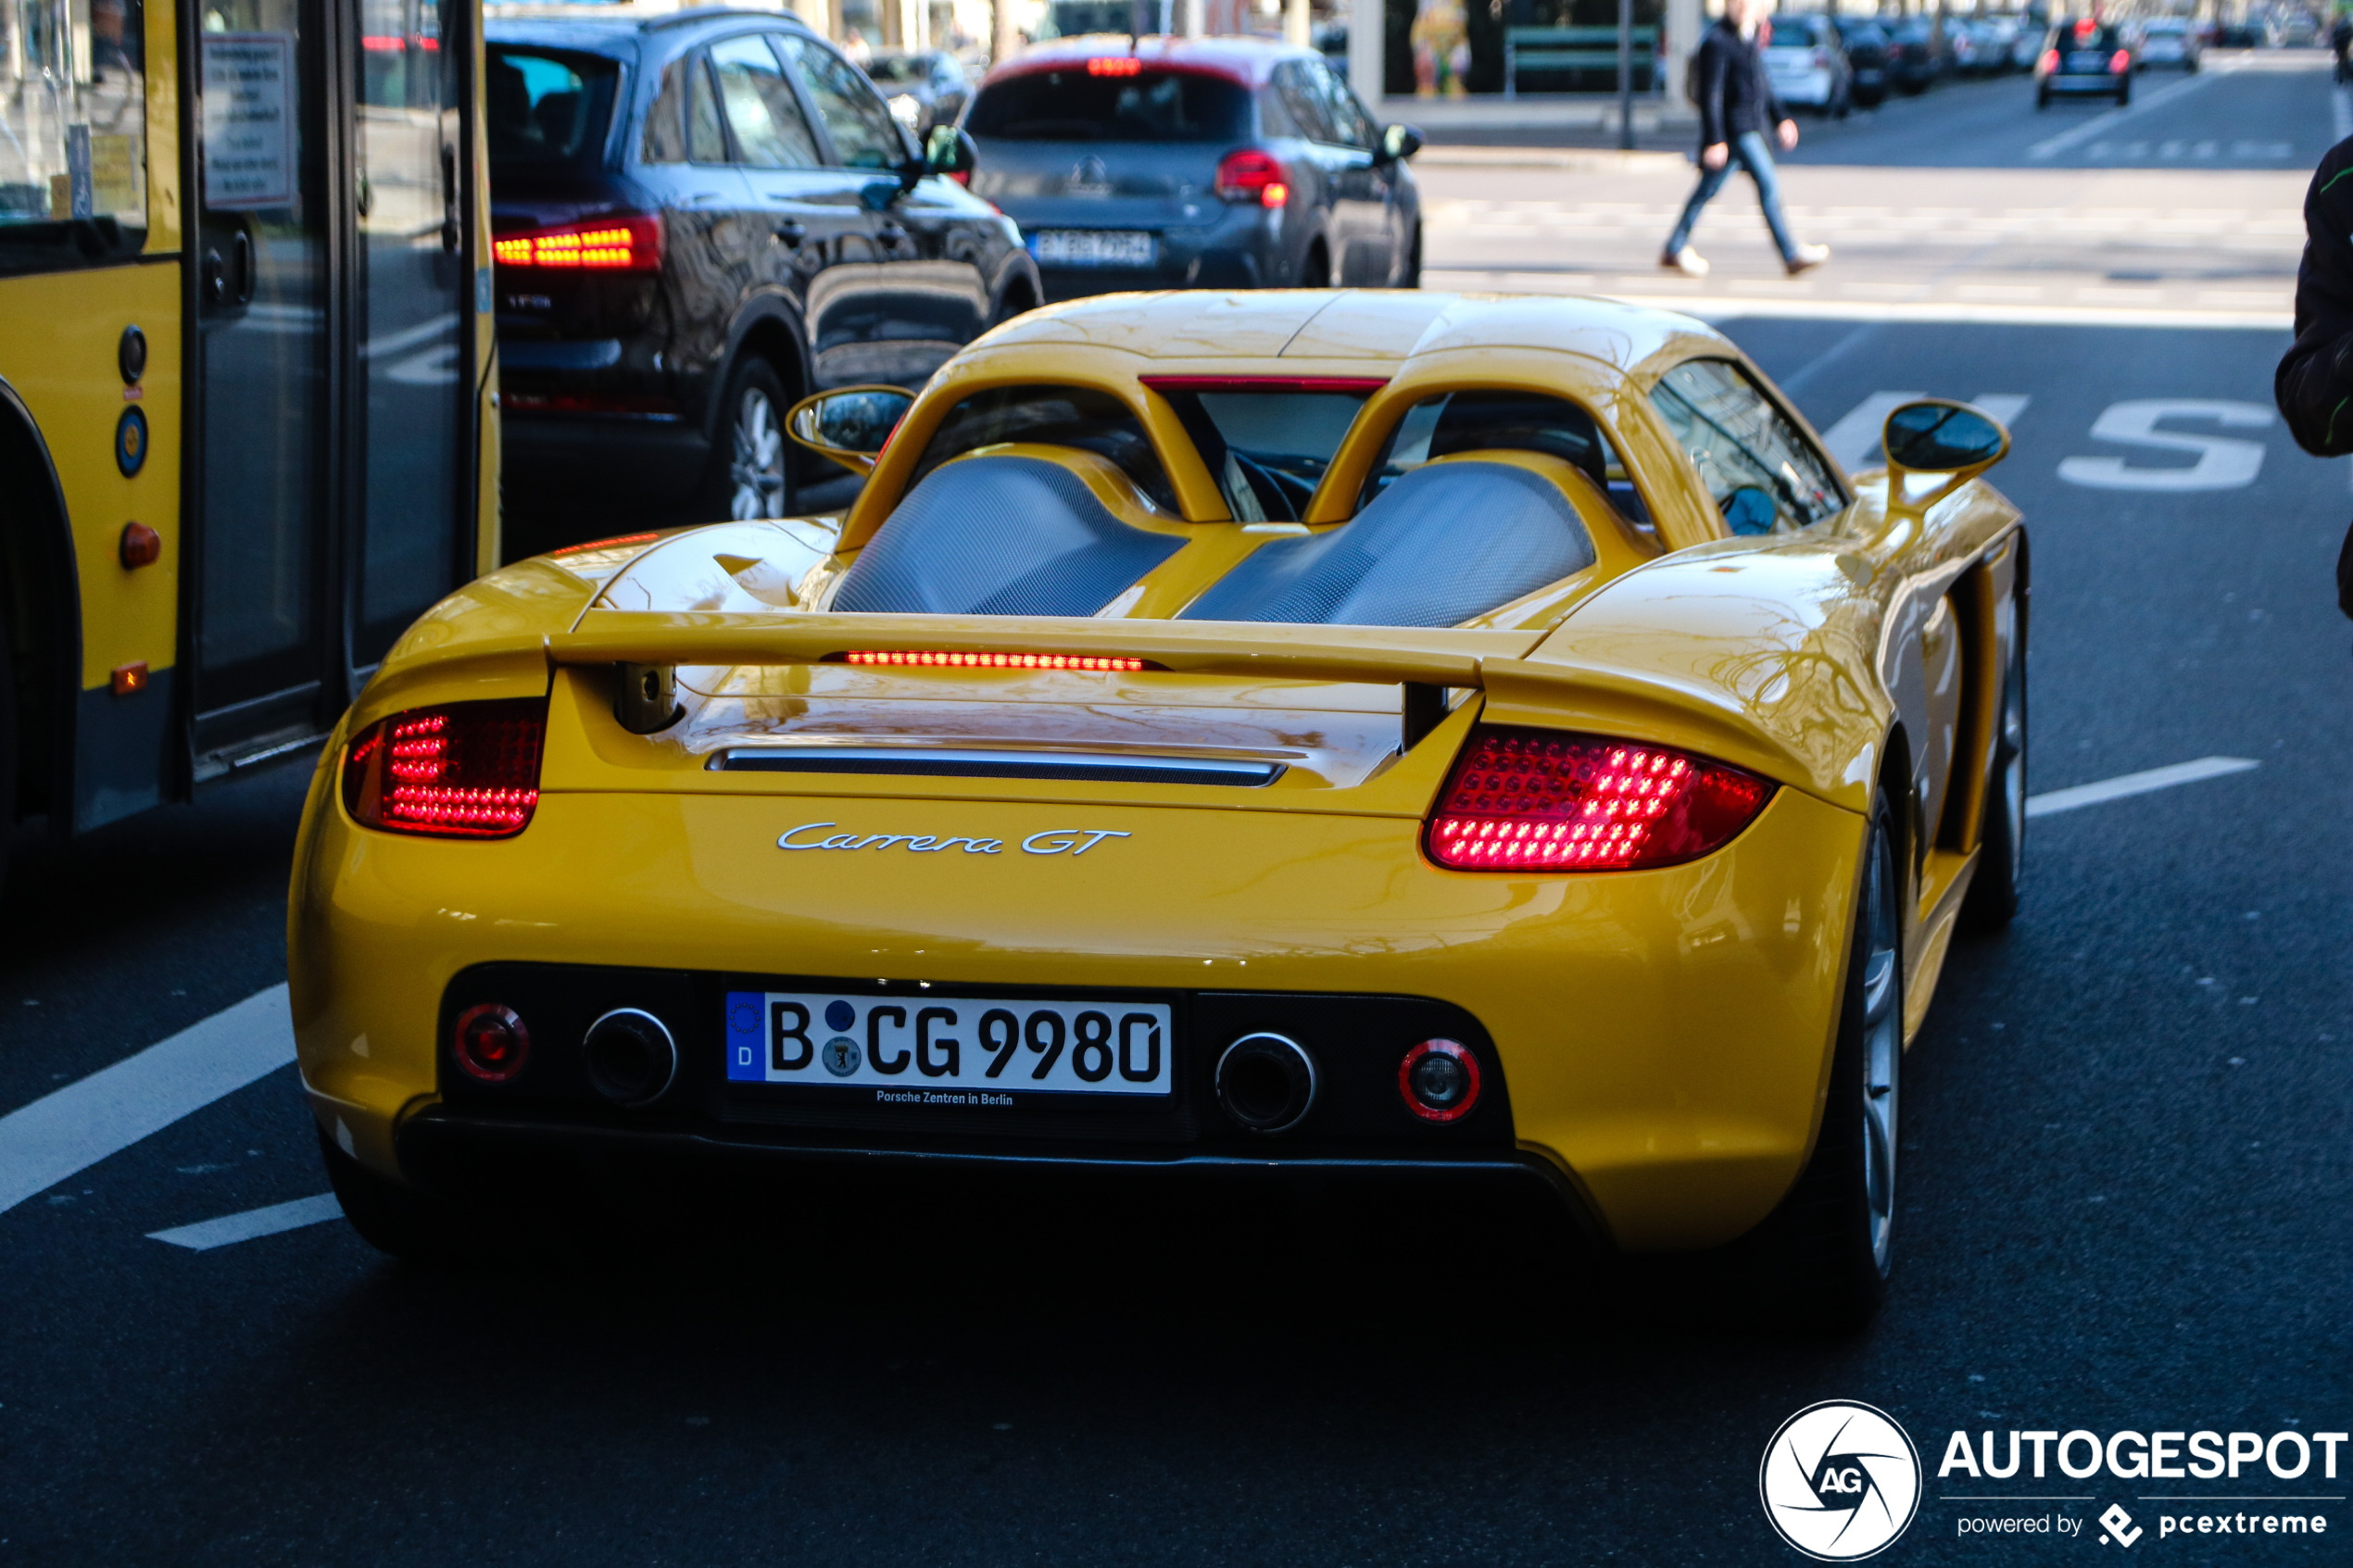 Yellow Porsche Carrera GT brightens up your day